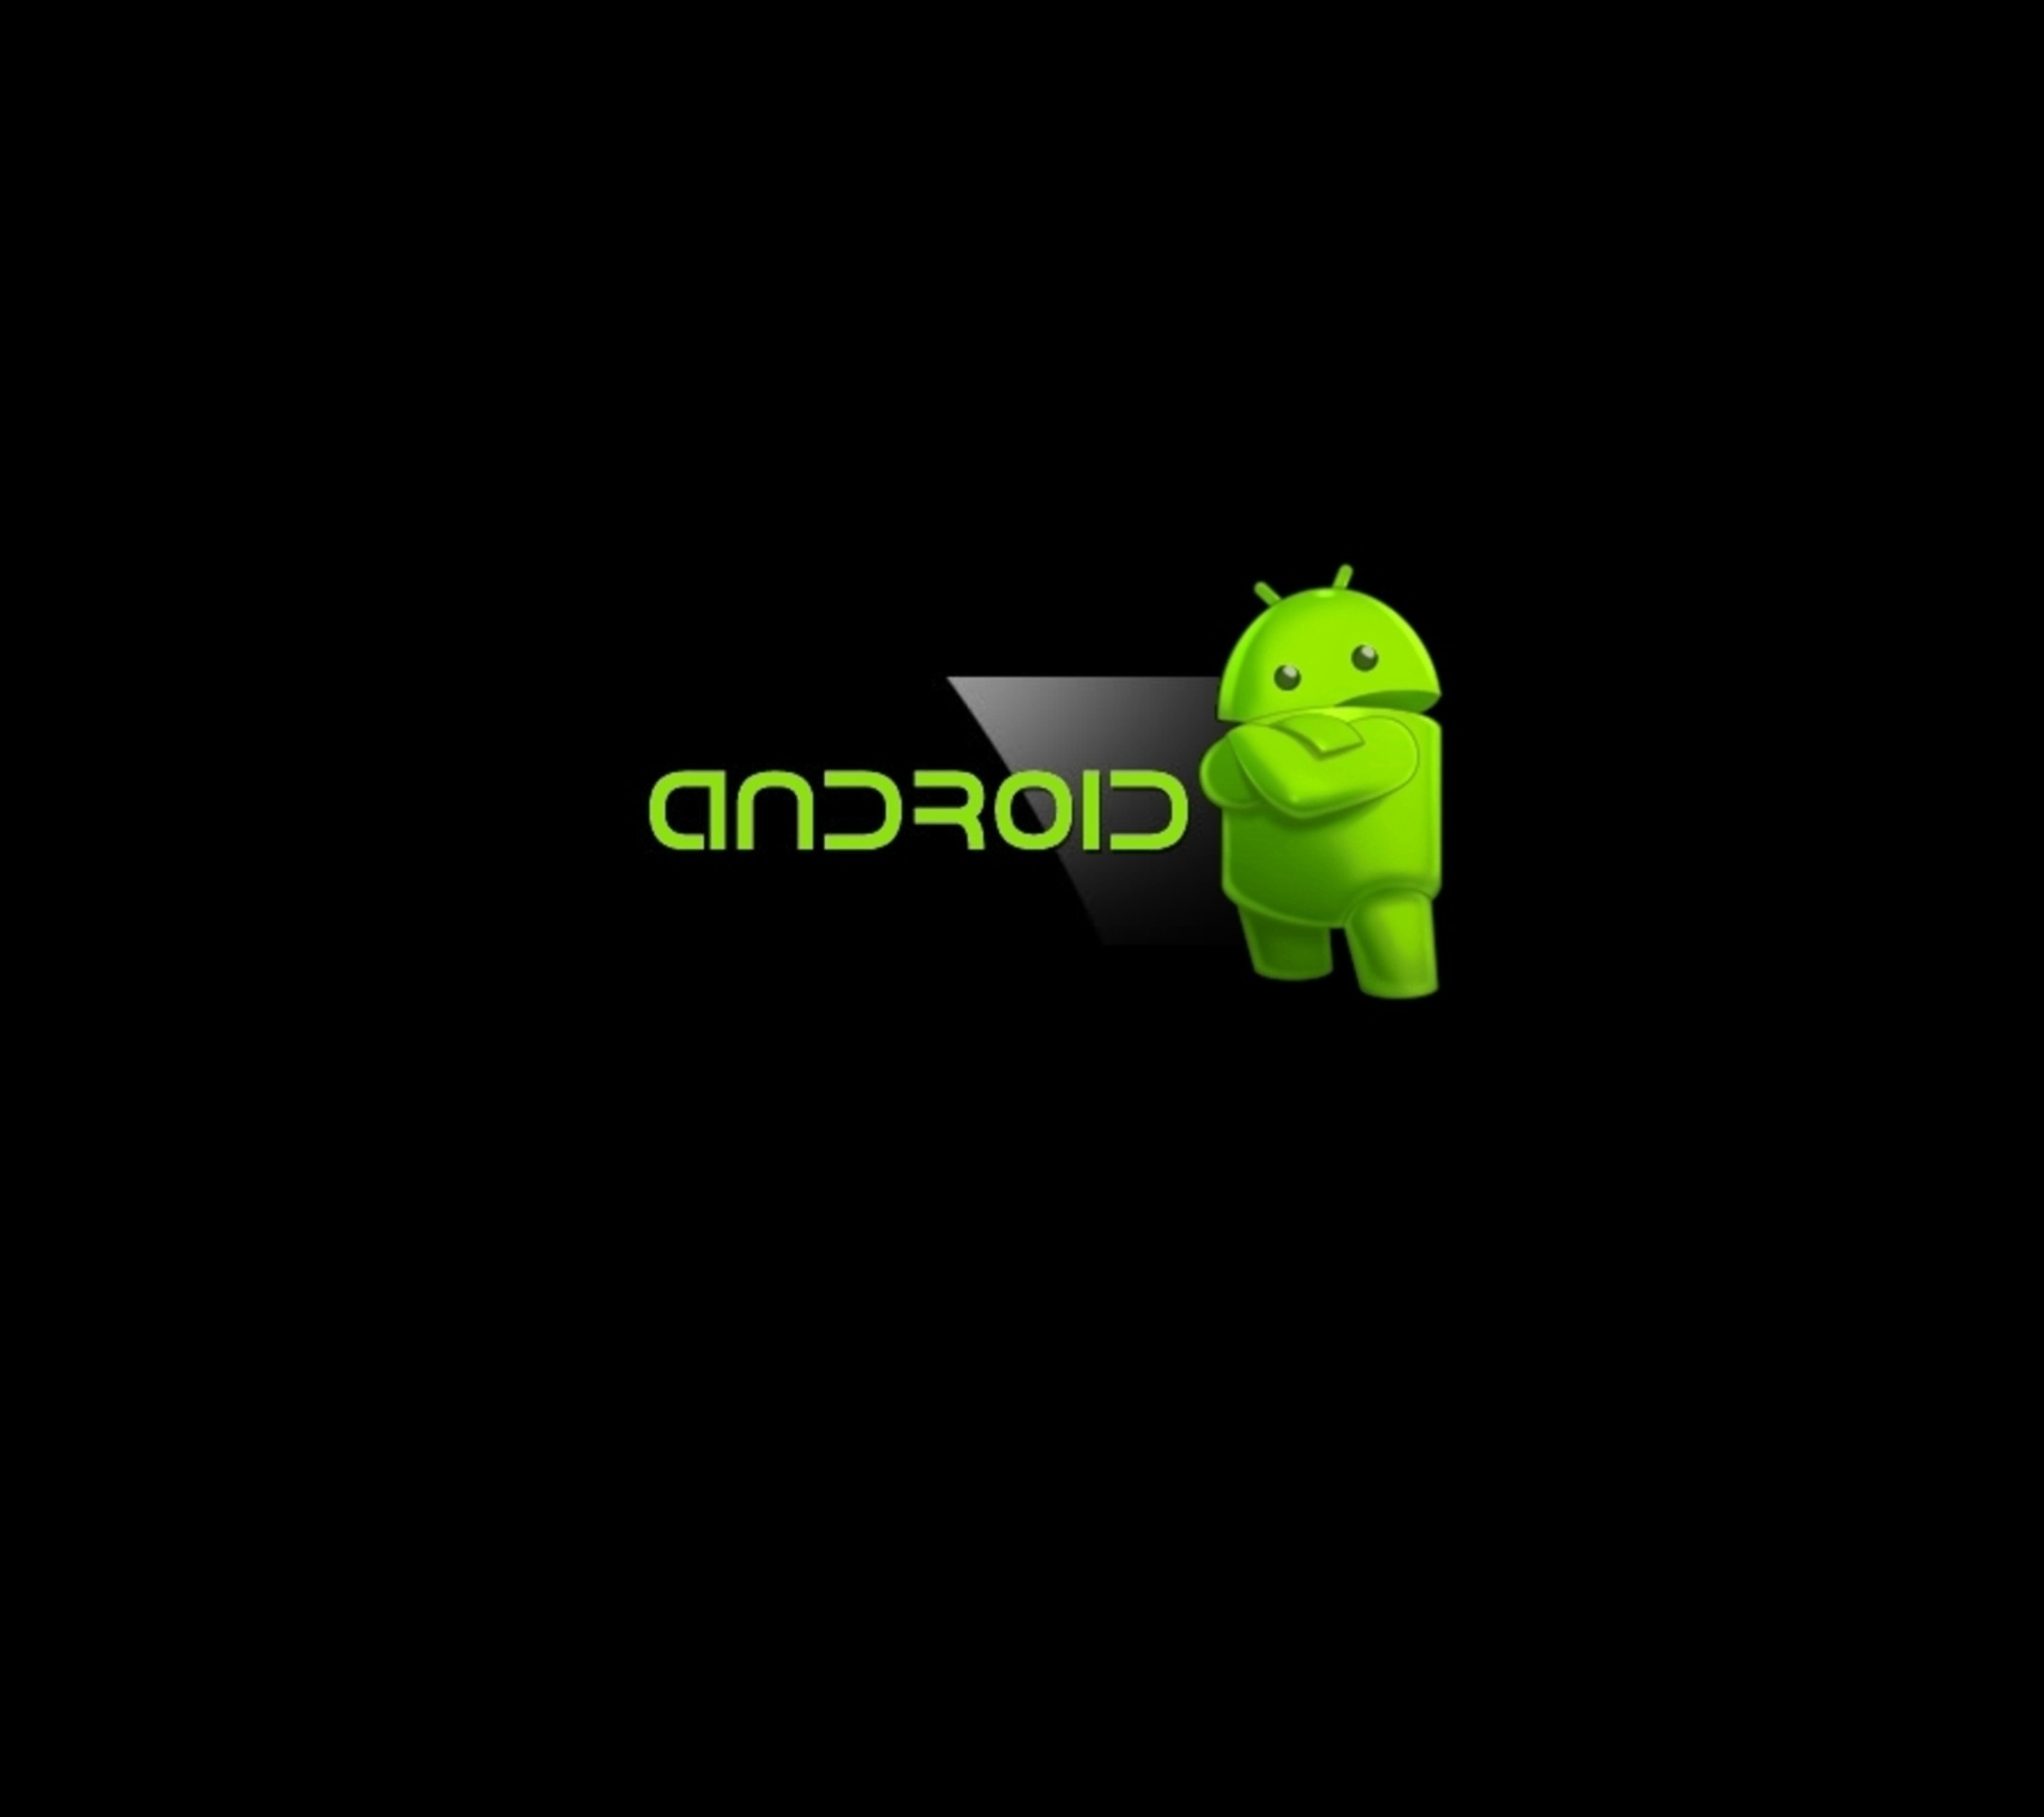 1920x1200 hd cyanogenmod version of android wallpapers for your desktop mobiles tablets in high quality hd widescreen